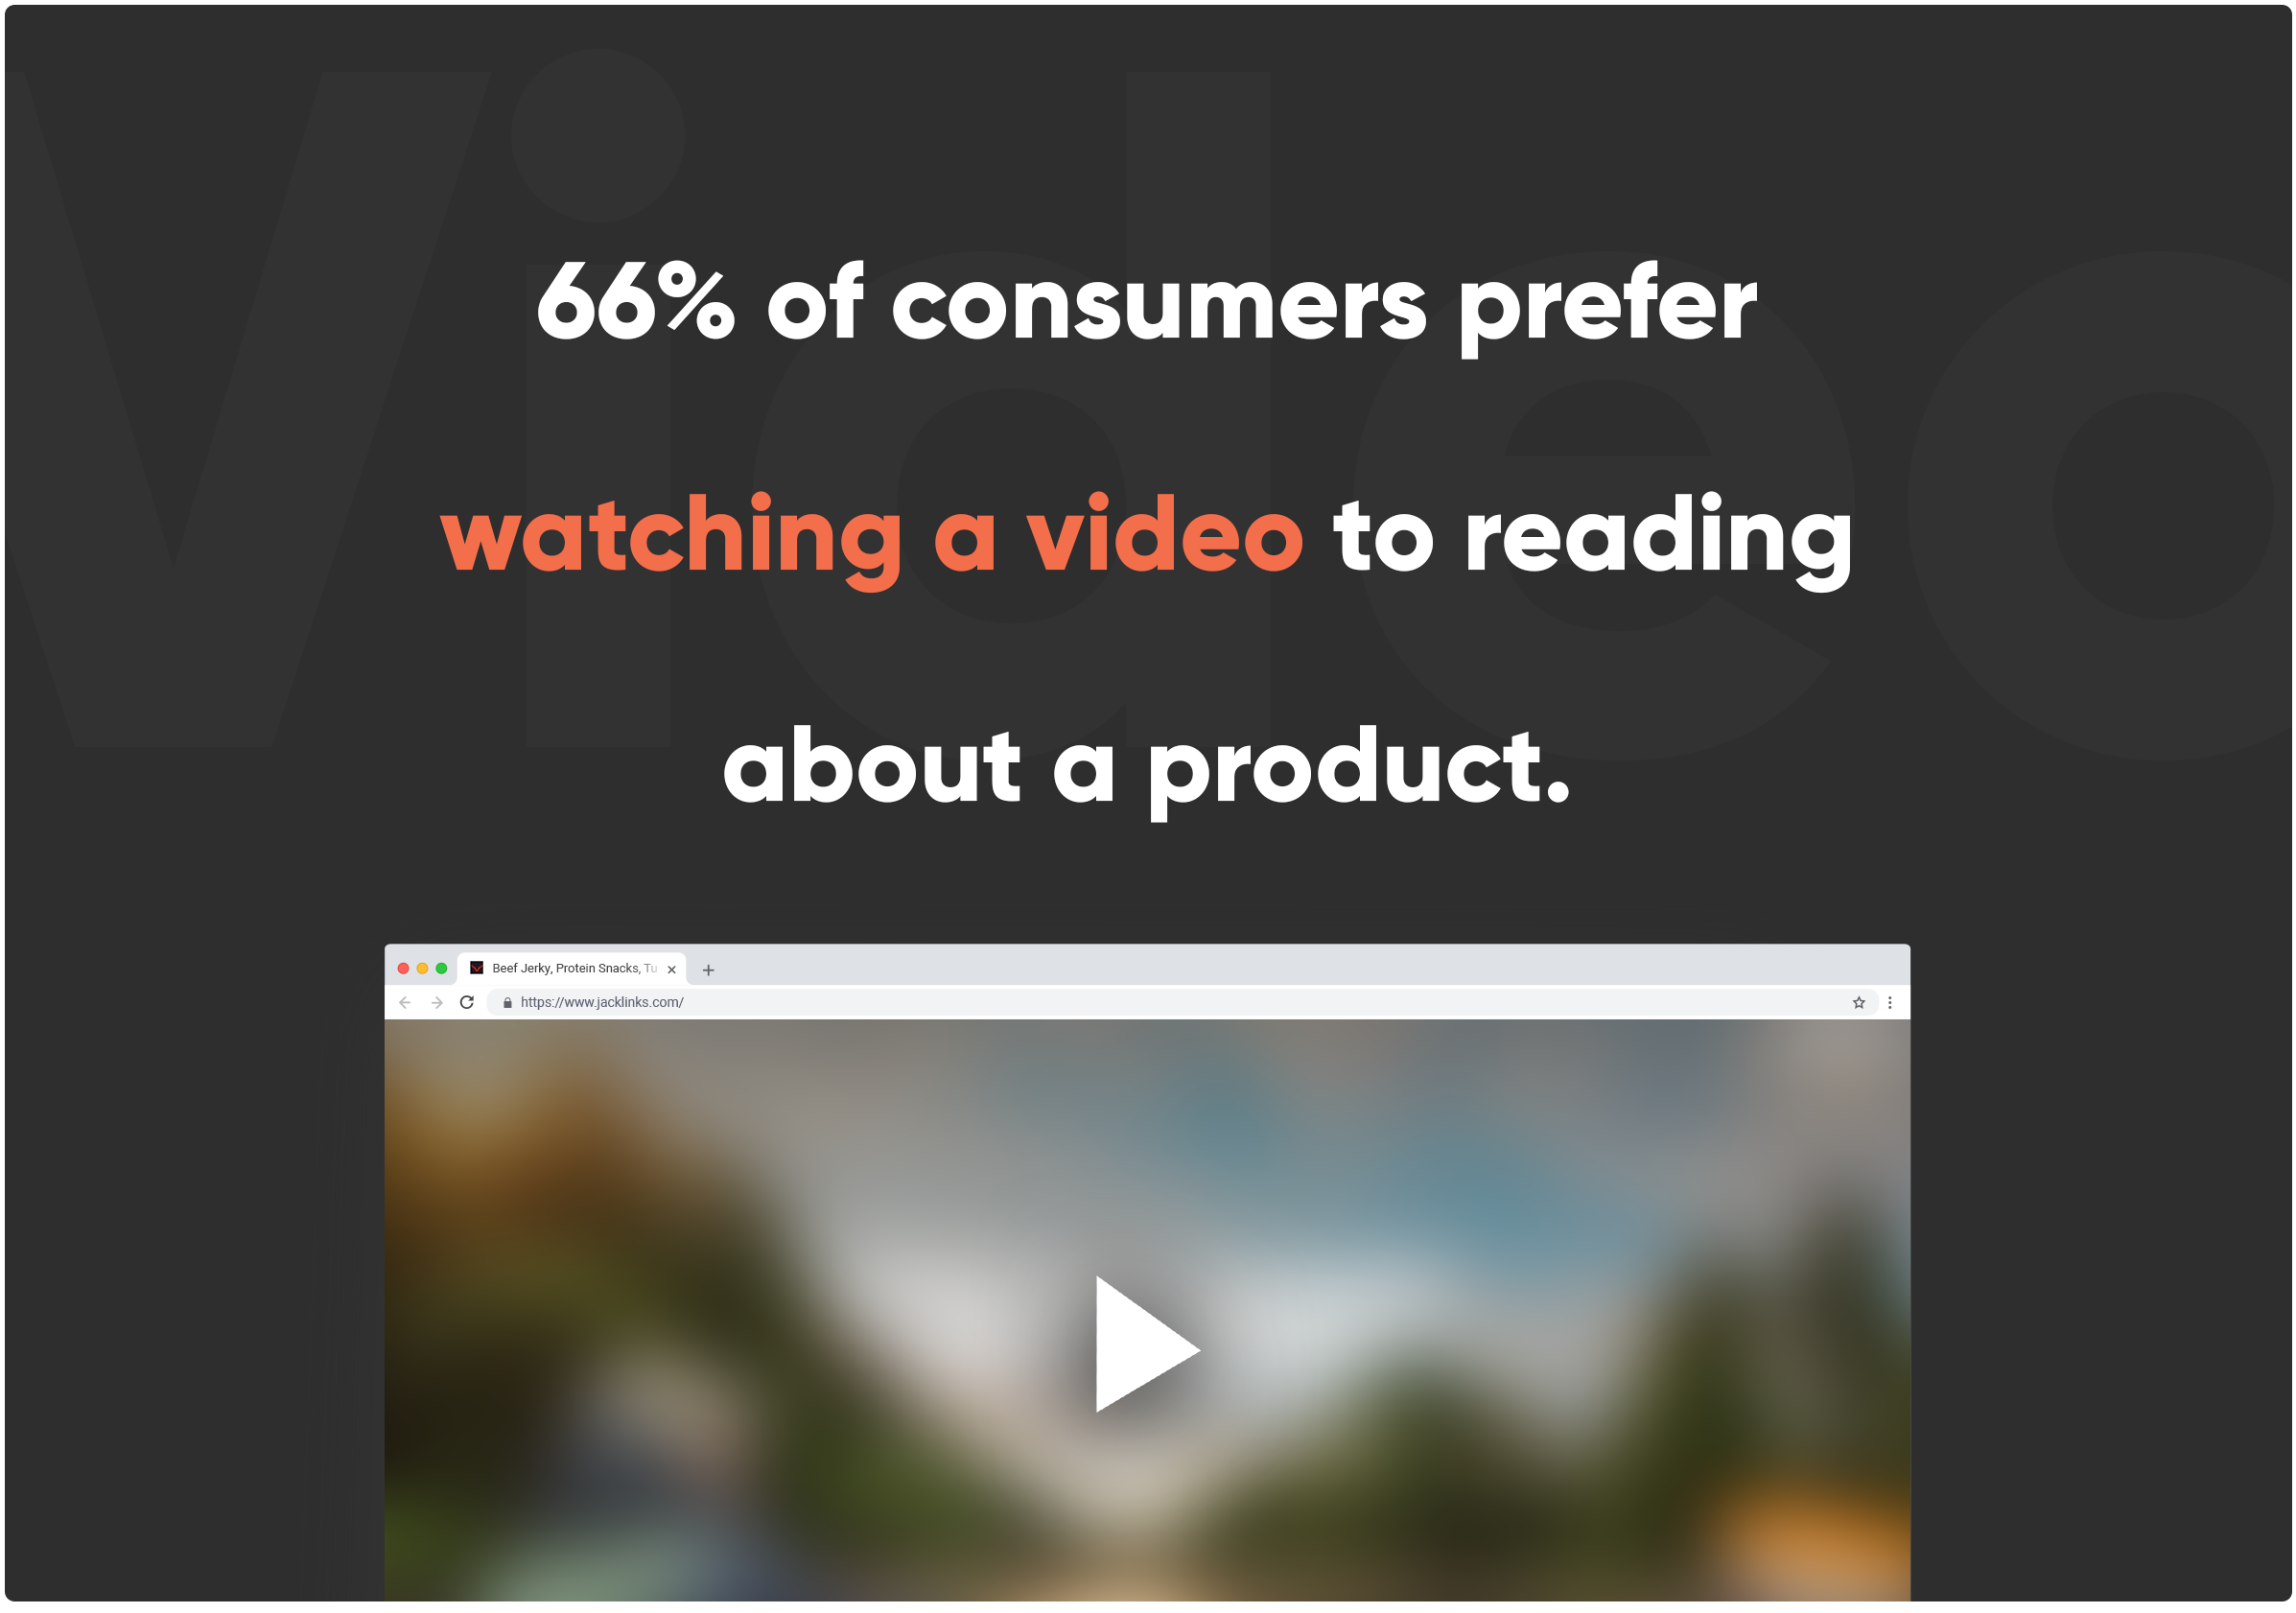 66% of consumers prefer watching a video to reading about a product